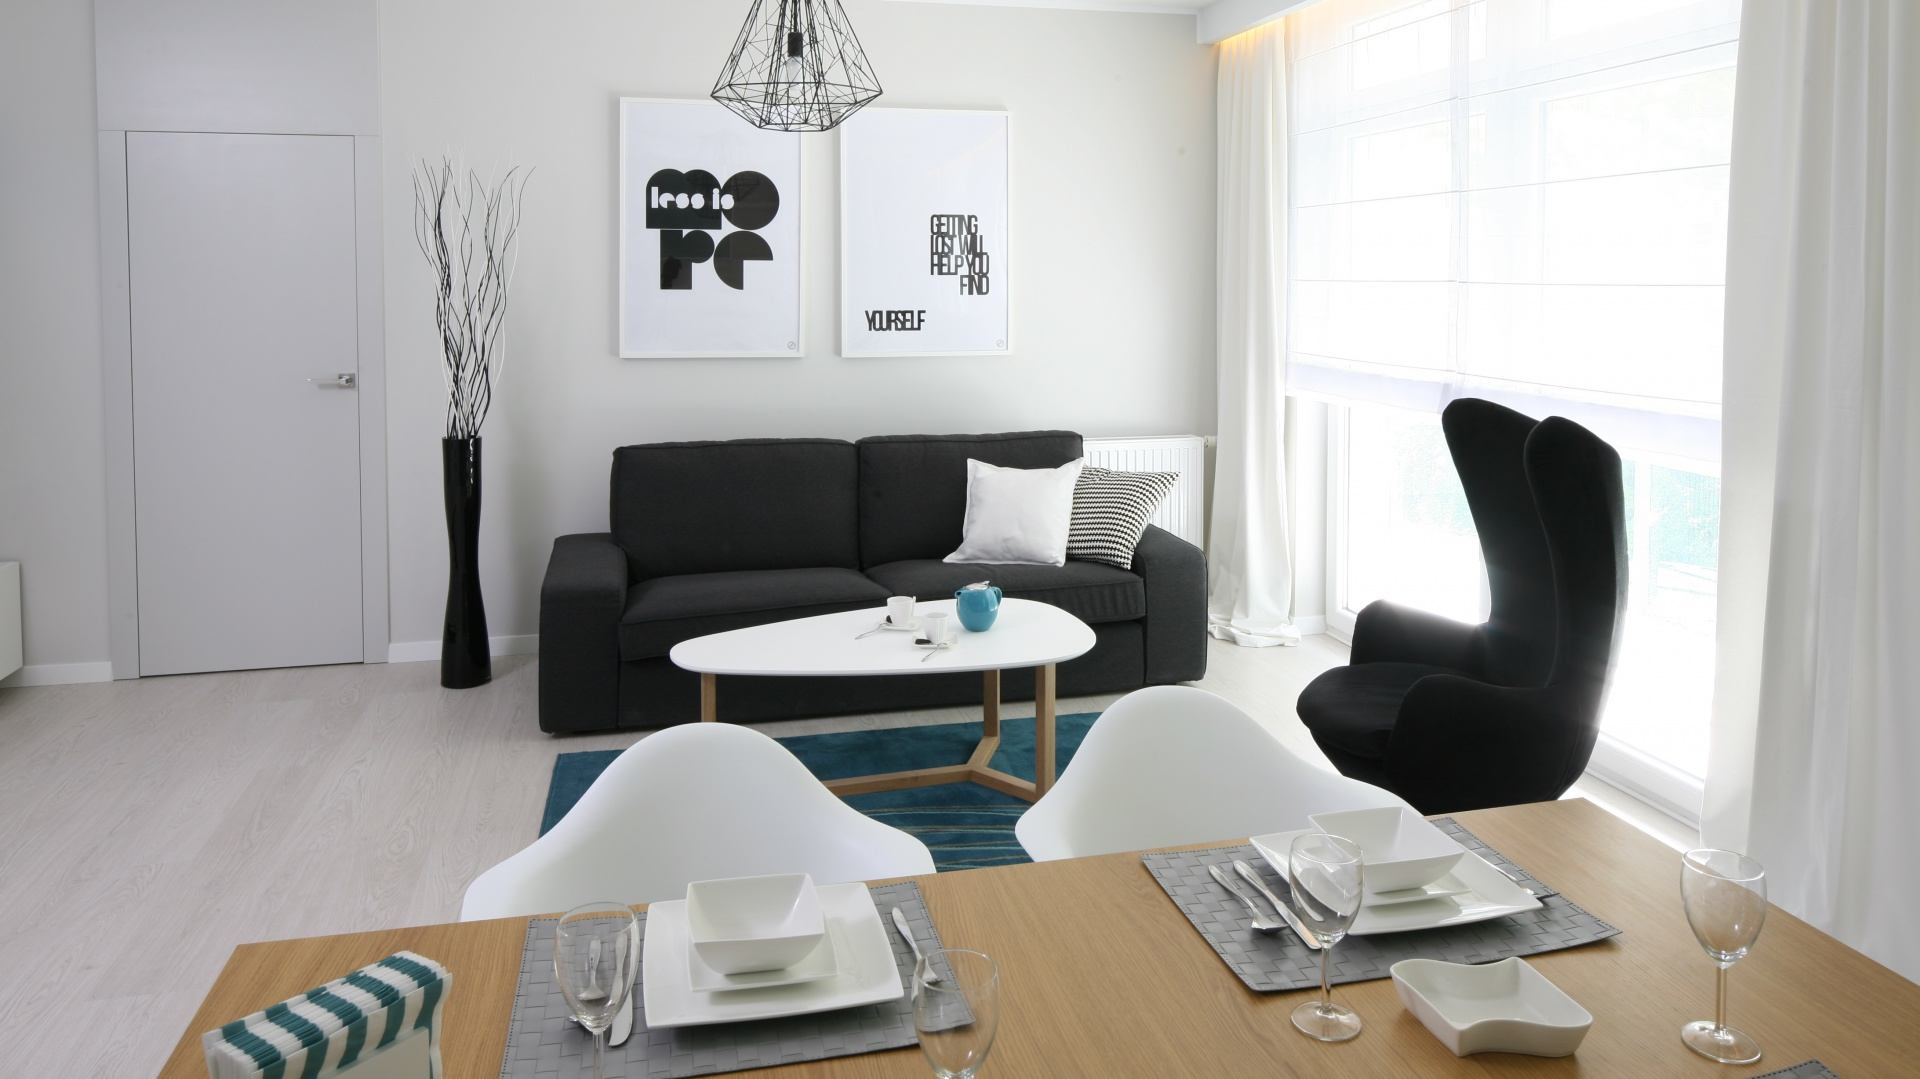 Black Sofa: Elegant and Original Design for Flawless Interior. White Scandi styled oval coffee table in the white colored modern living